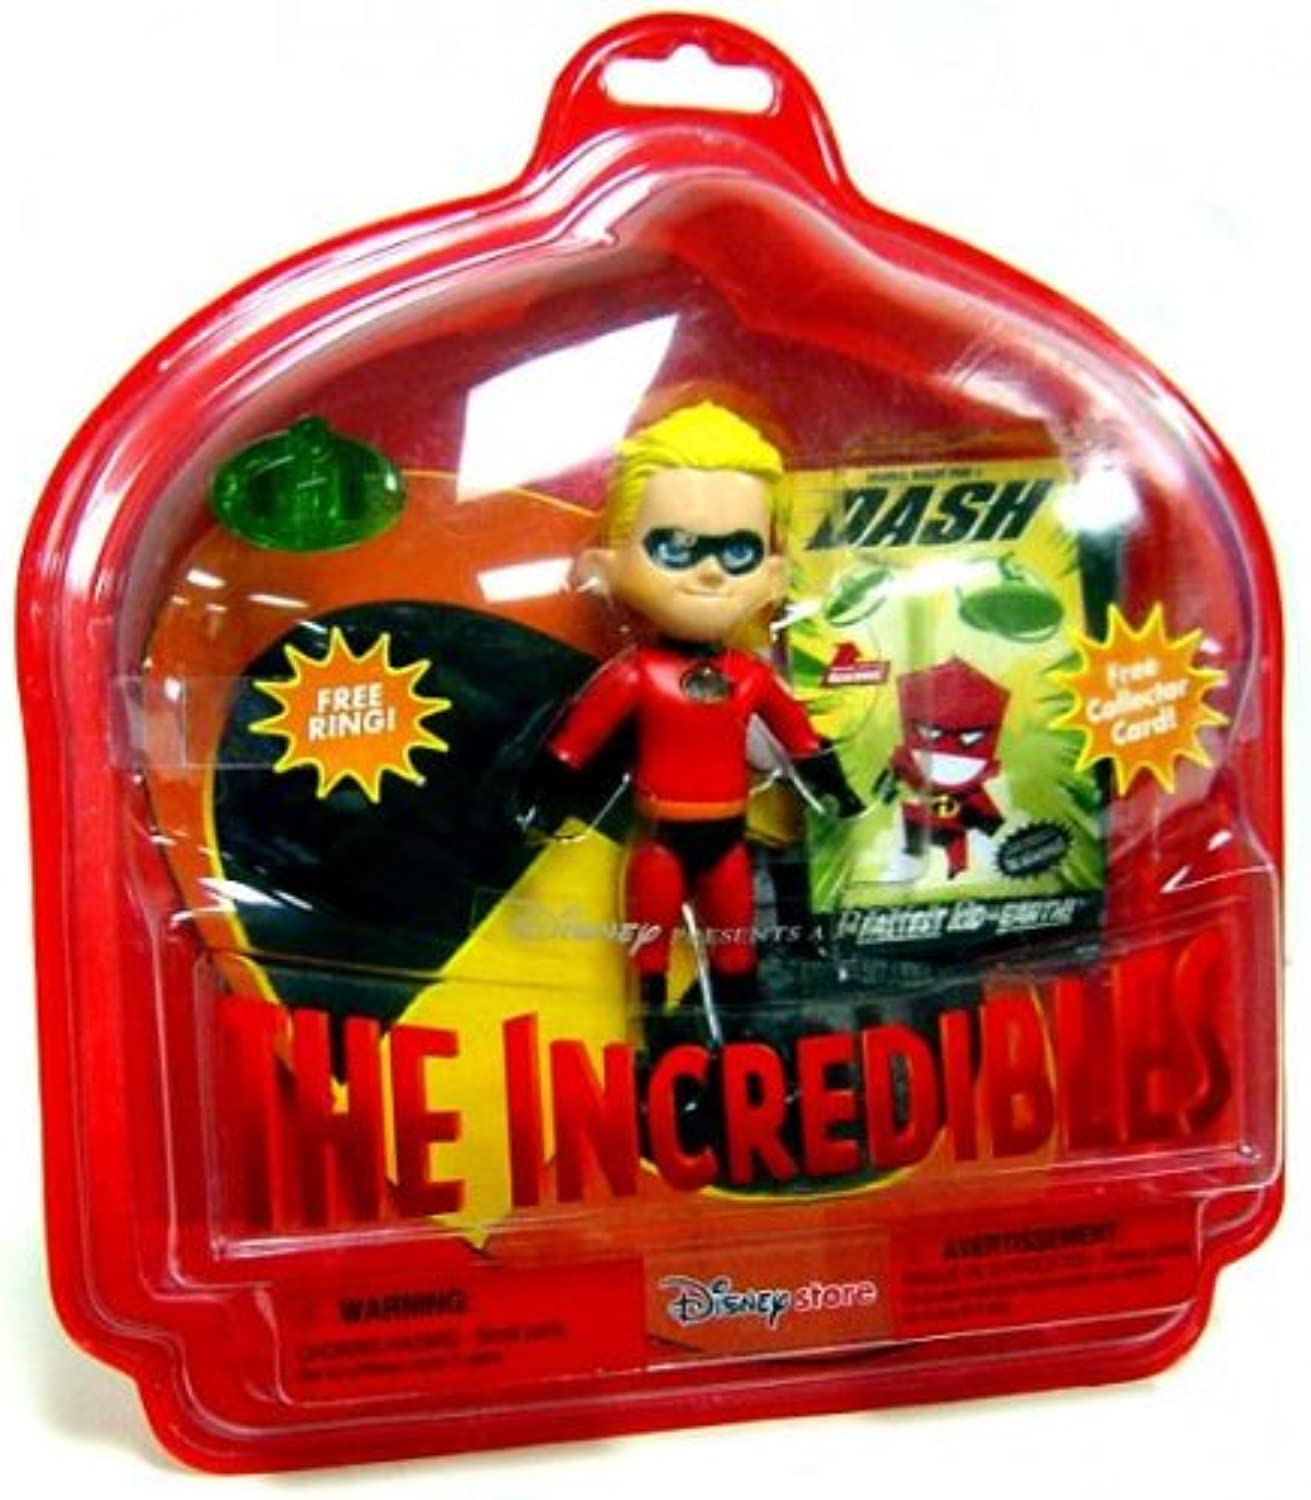 Disney the Incredibles Dash Action Figure by Disney Store